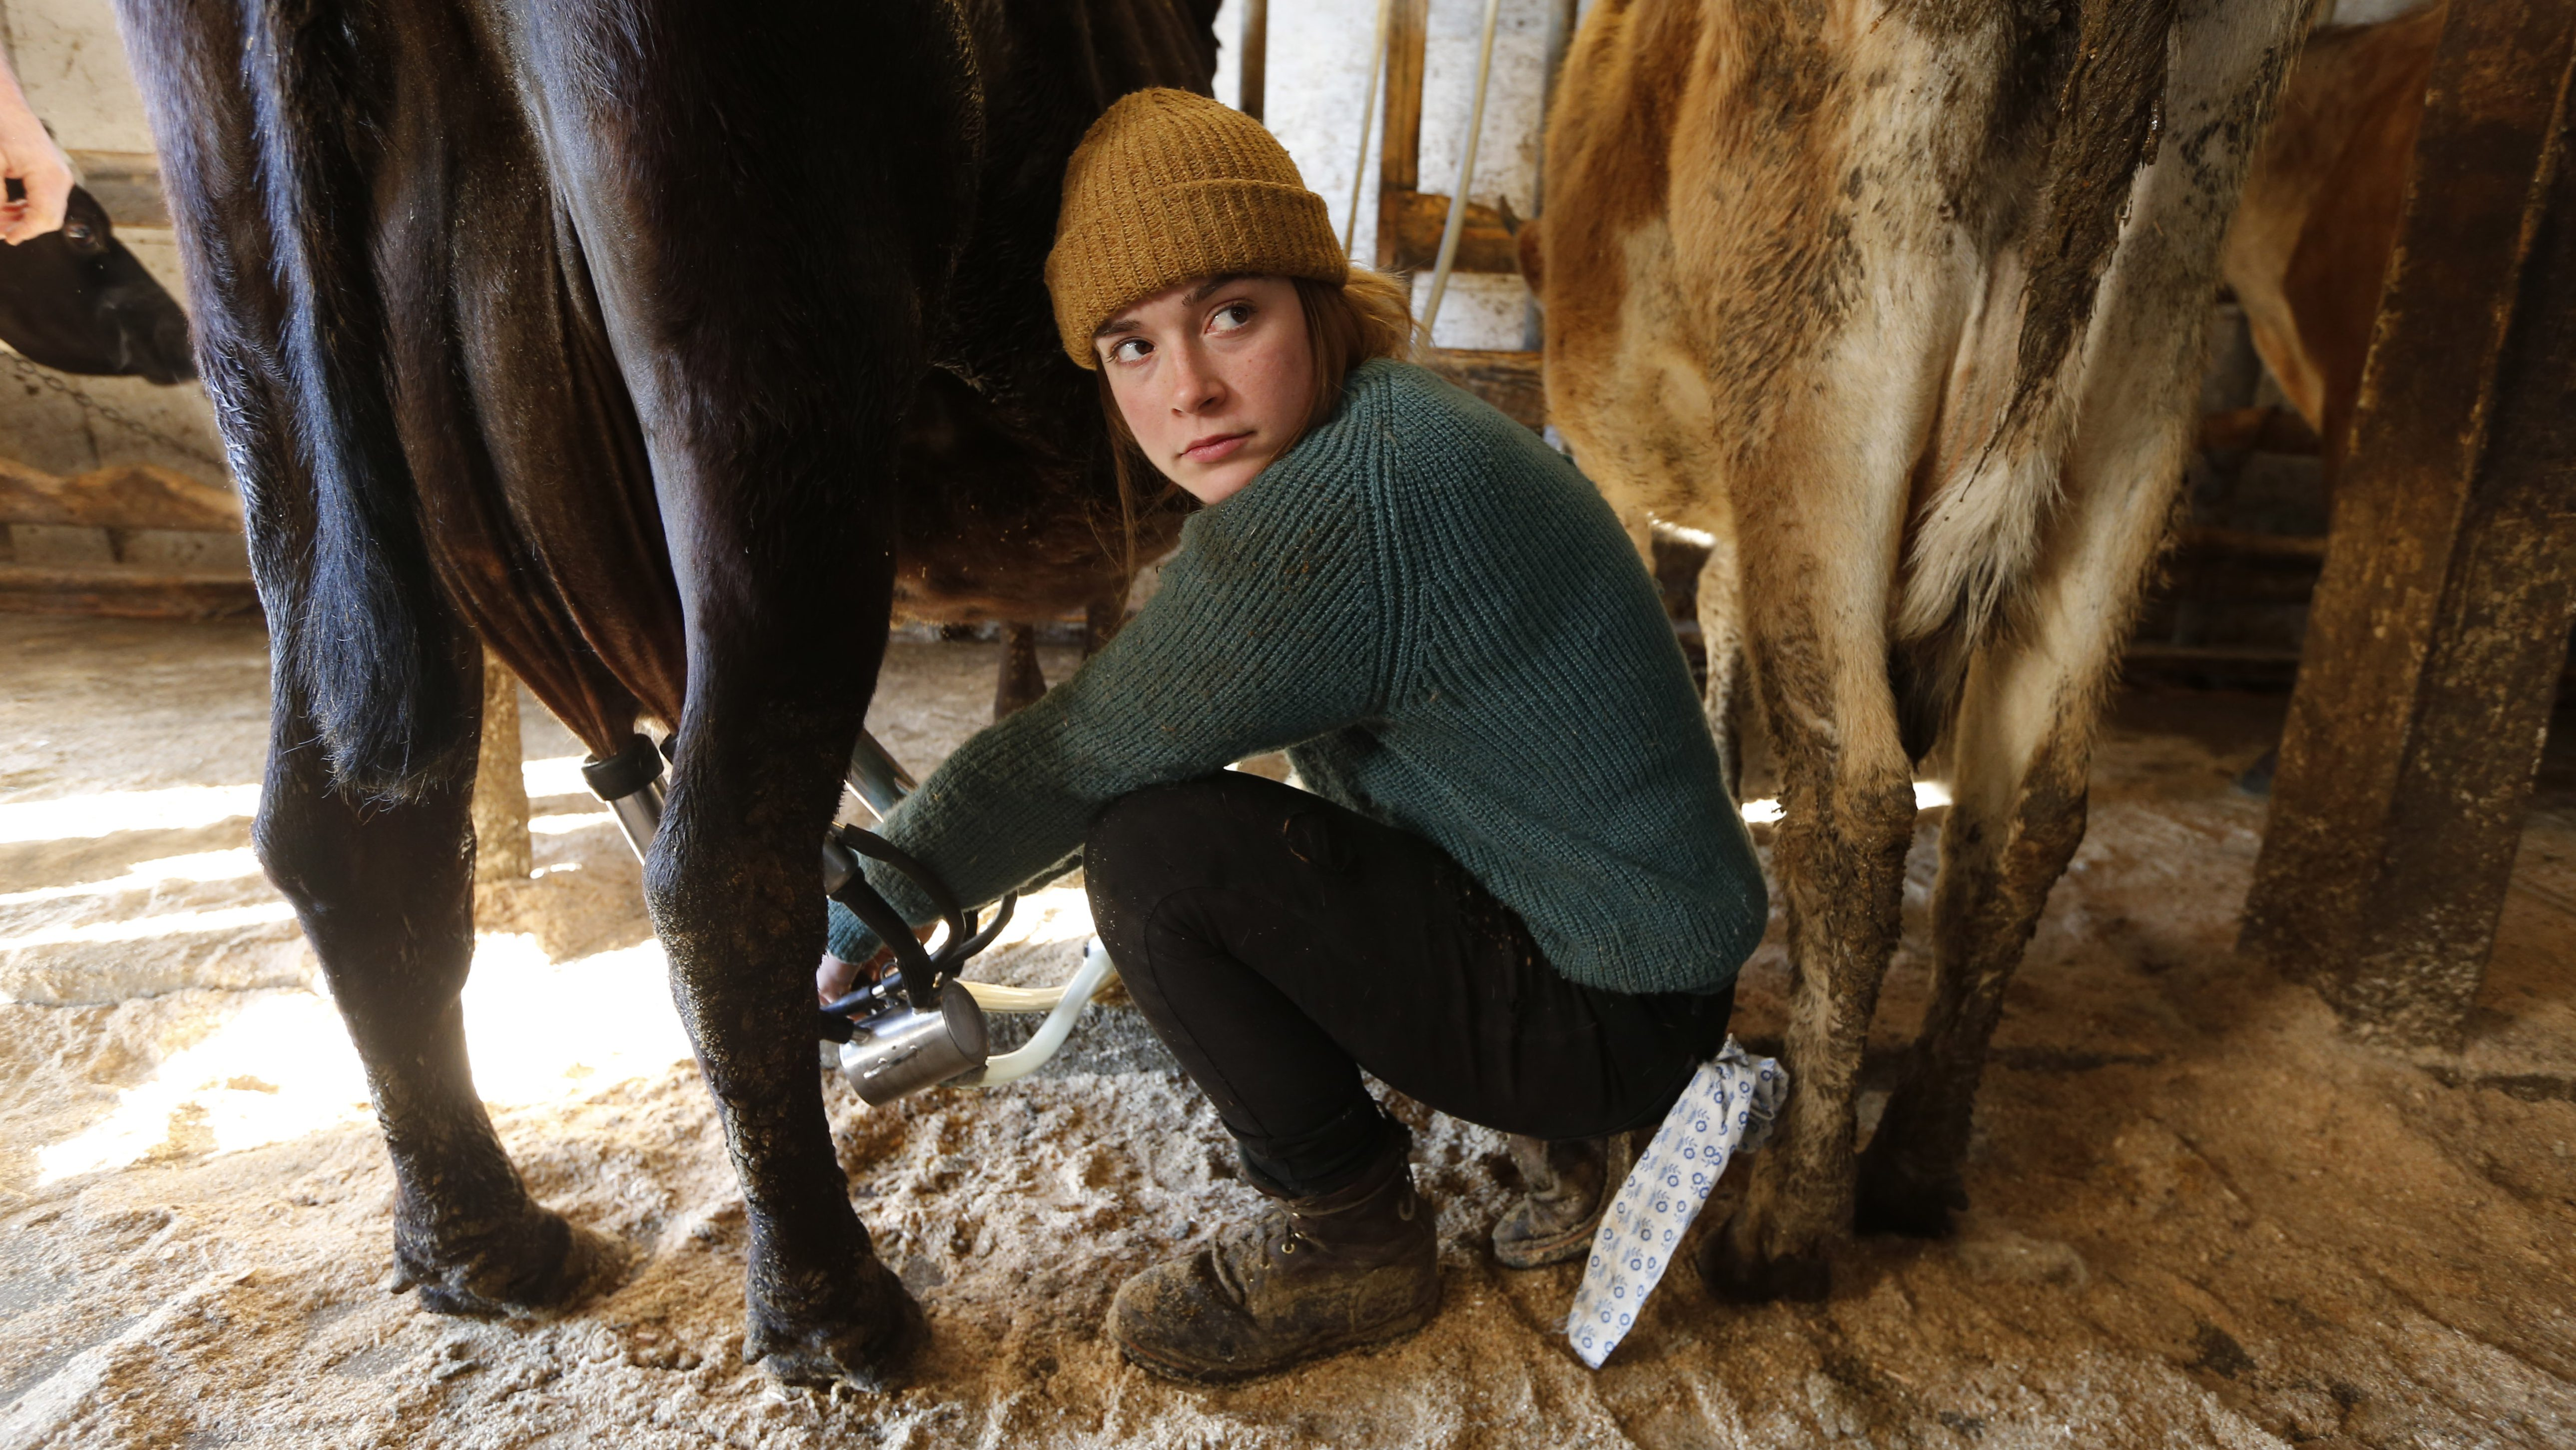 In this Tuesday, March 31, 2015 photo, Jade Ouimette, 21, milks cows at the Straw Farm in Newcastle, Maine. The state's dairy farmers are divided over a potential vote this week on a statewide proposal that could change restrictions on raw milk sales. A bill would exempt some dairy farms from licensing requirements needed to sell raw milk direct to consumers. (AP Photo/Robert F. Bukaty)